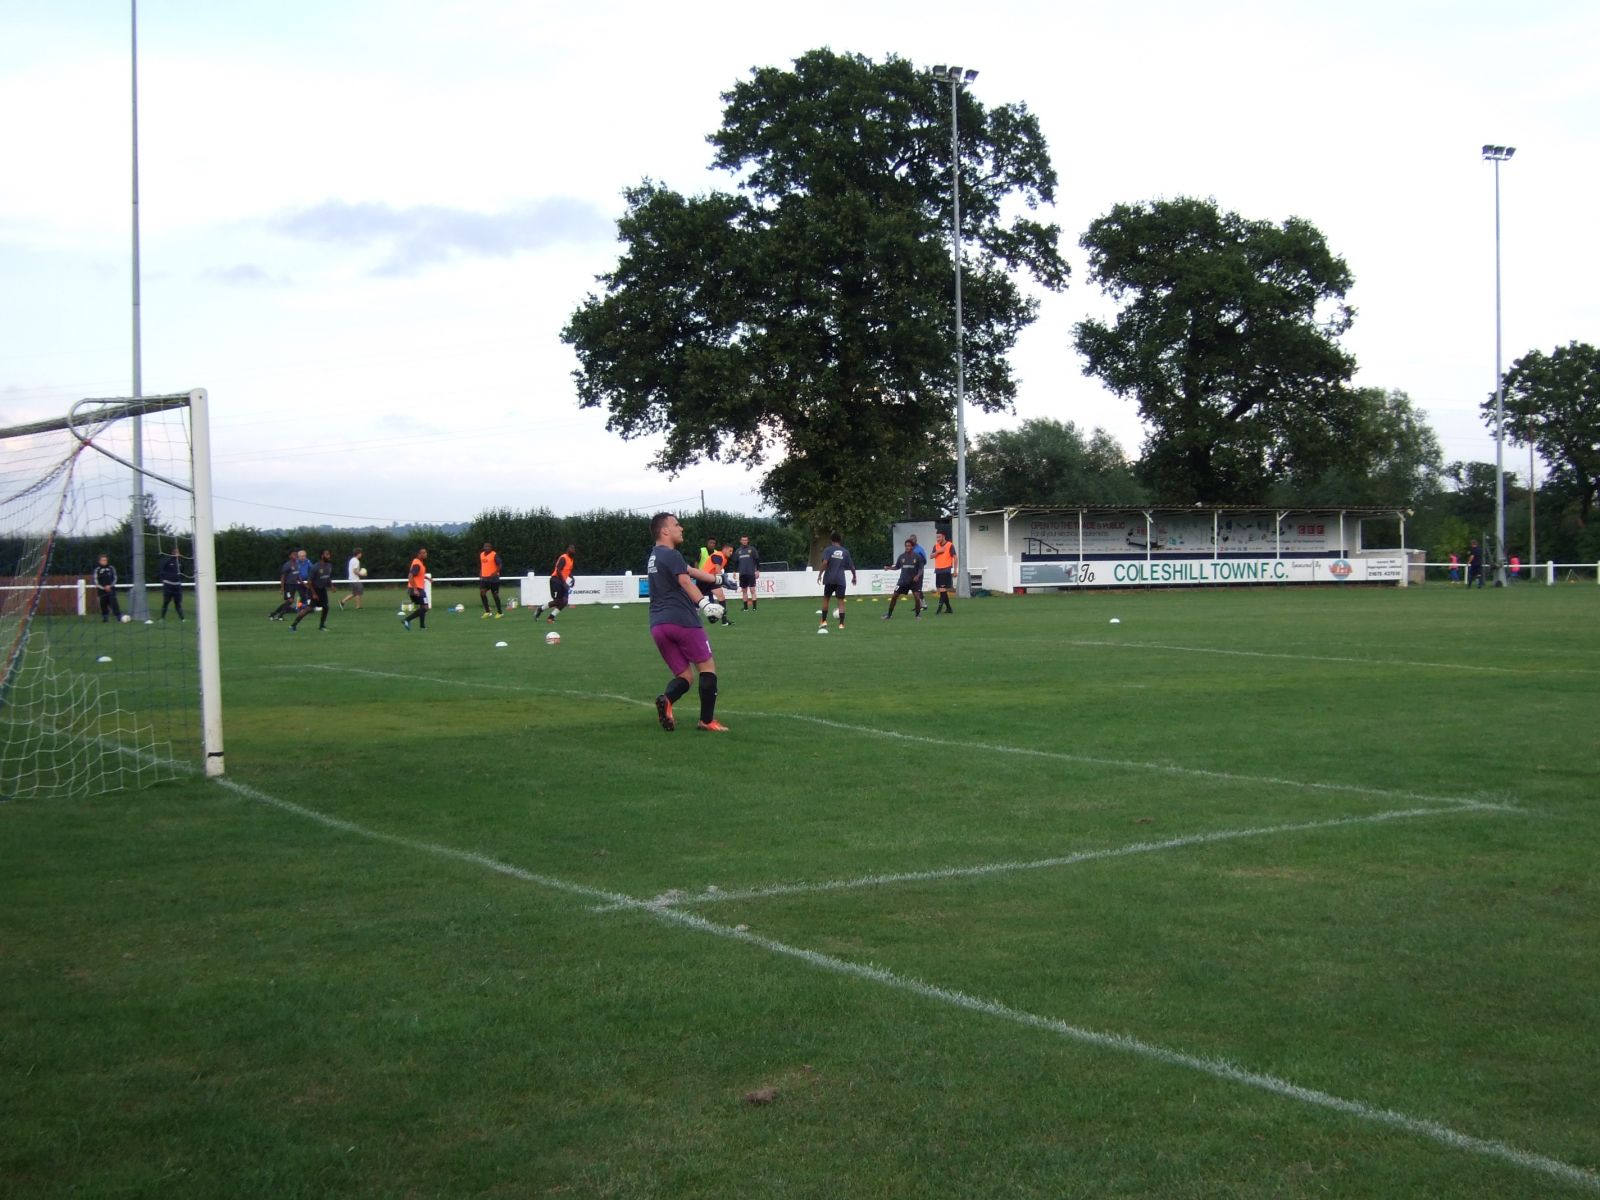 Pack Meadow, Coleshill. 5th August 2014.